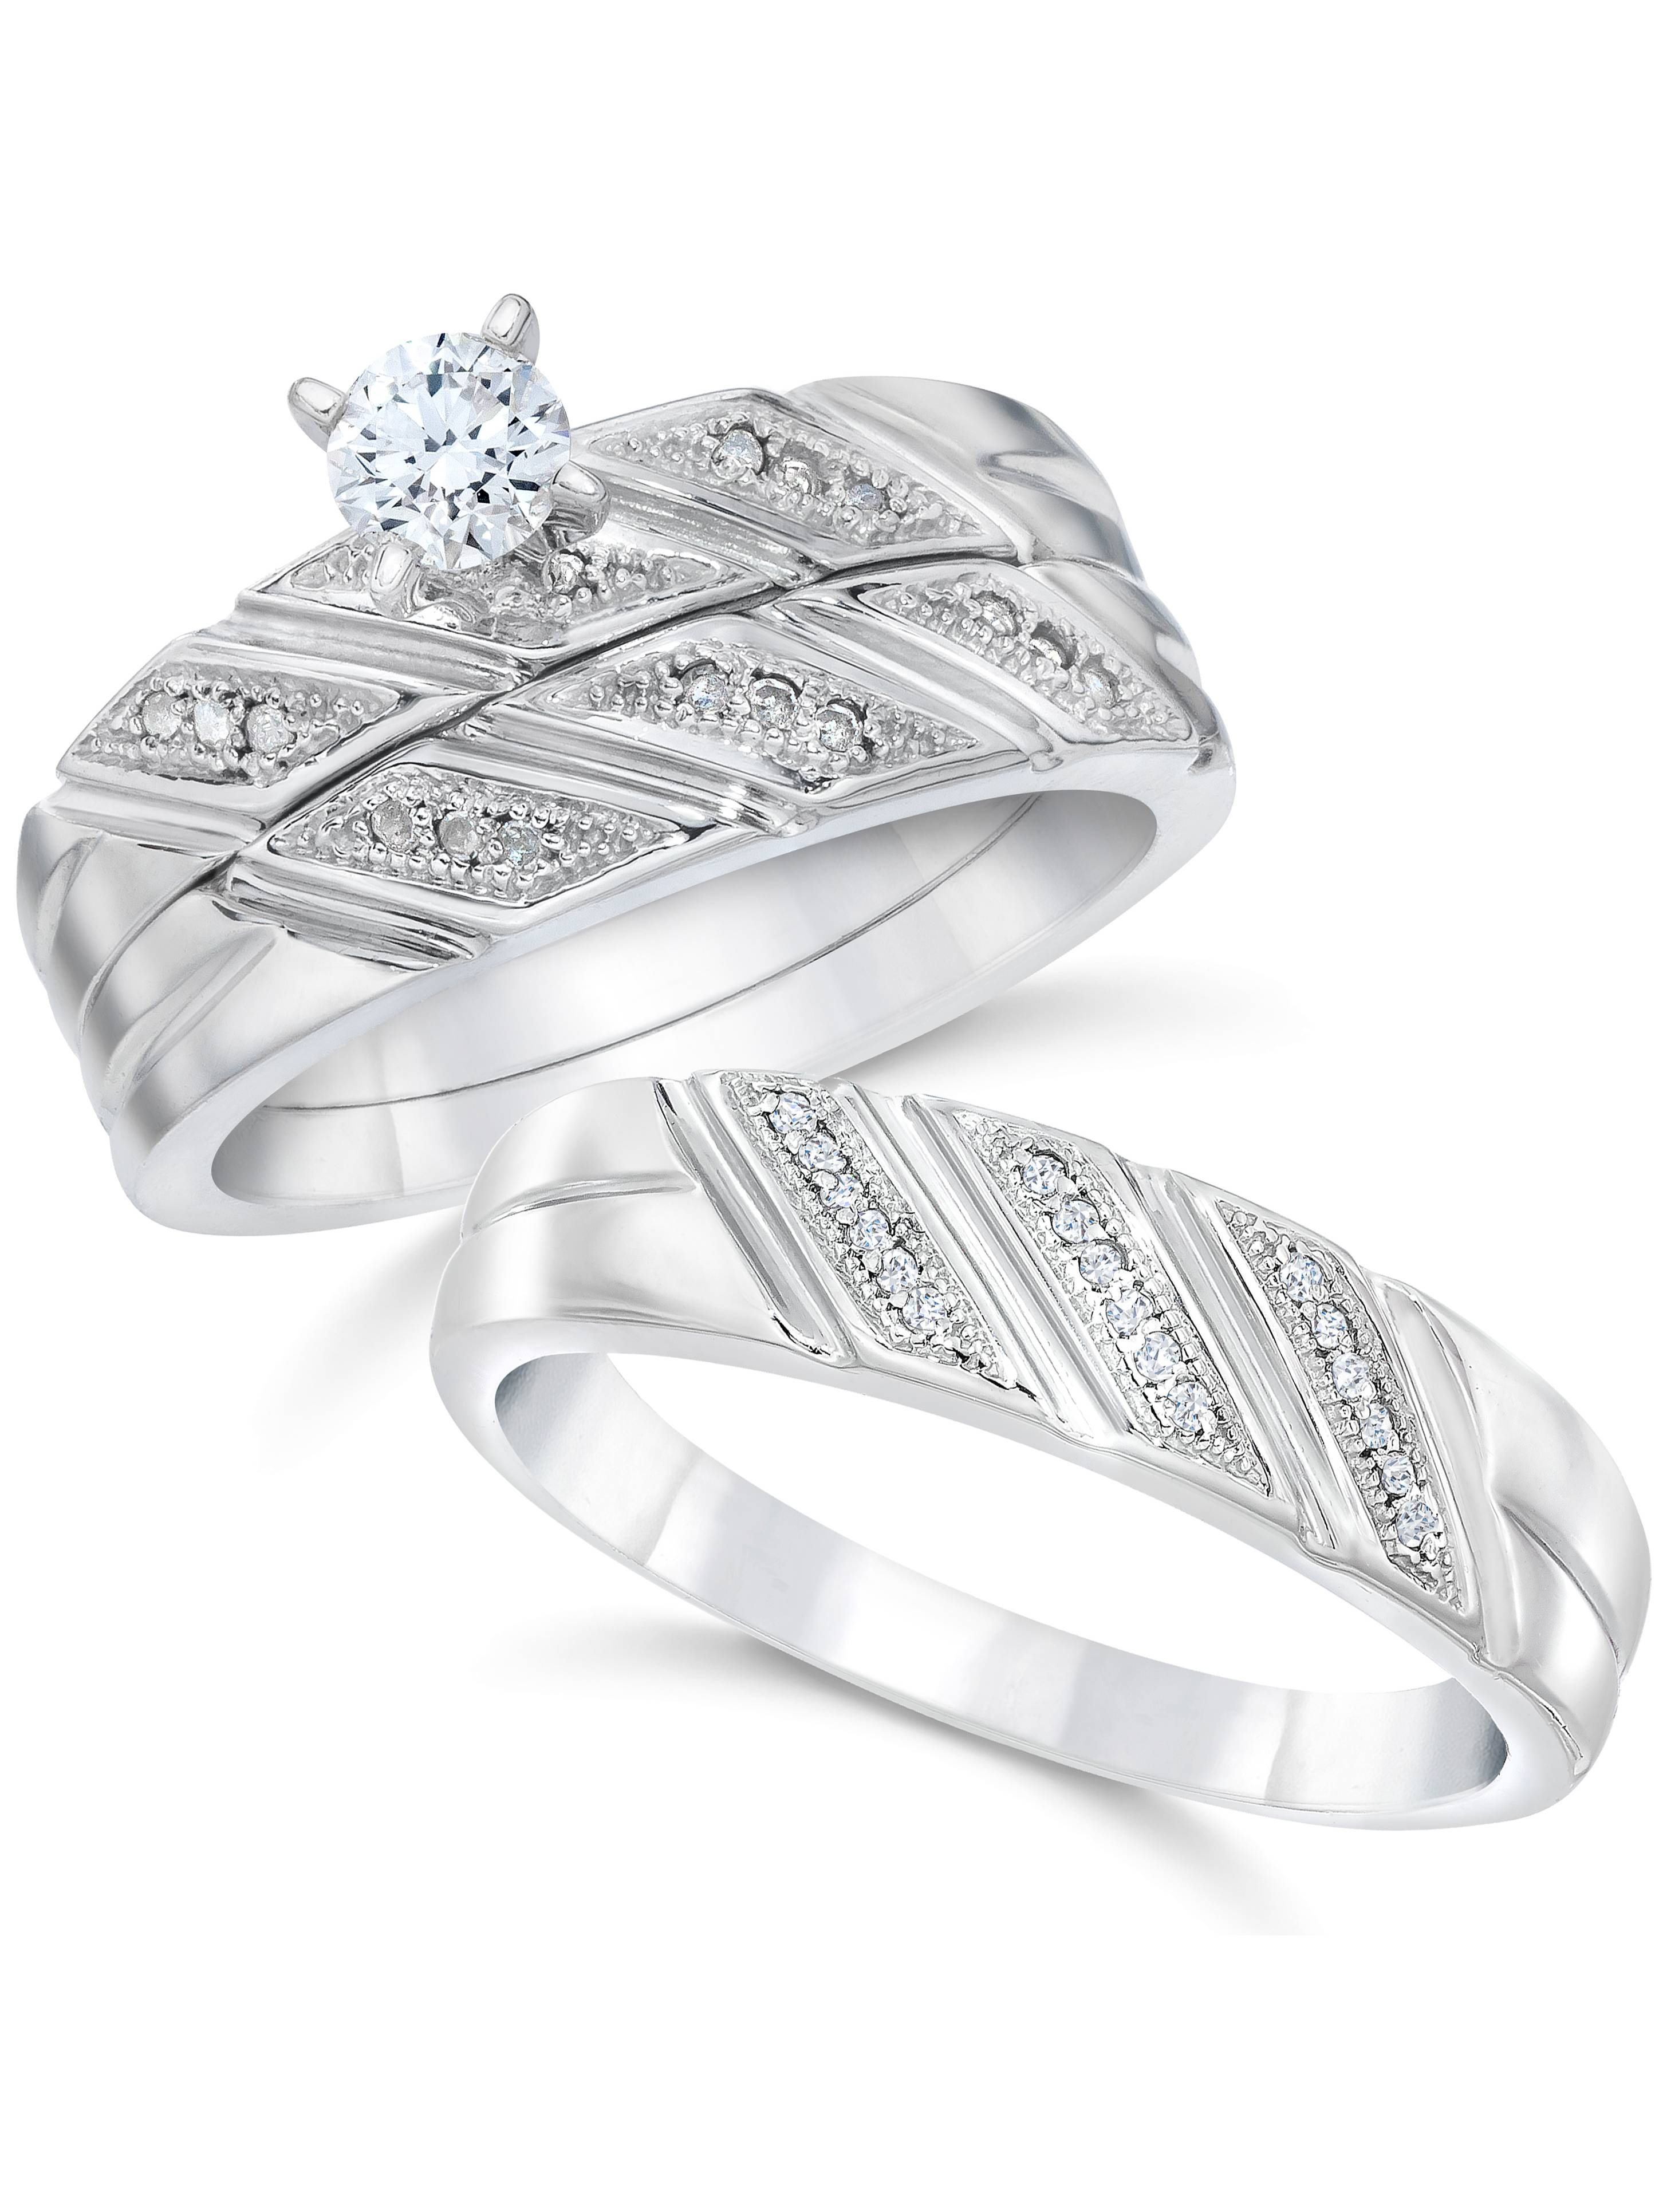 It is just a photo of Pompeii388 - 388/388ct His Hers Diamond Trio Engagement Matching Mens Wedding Ring Set White Gold - Walmart.com